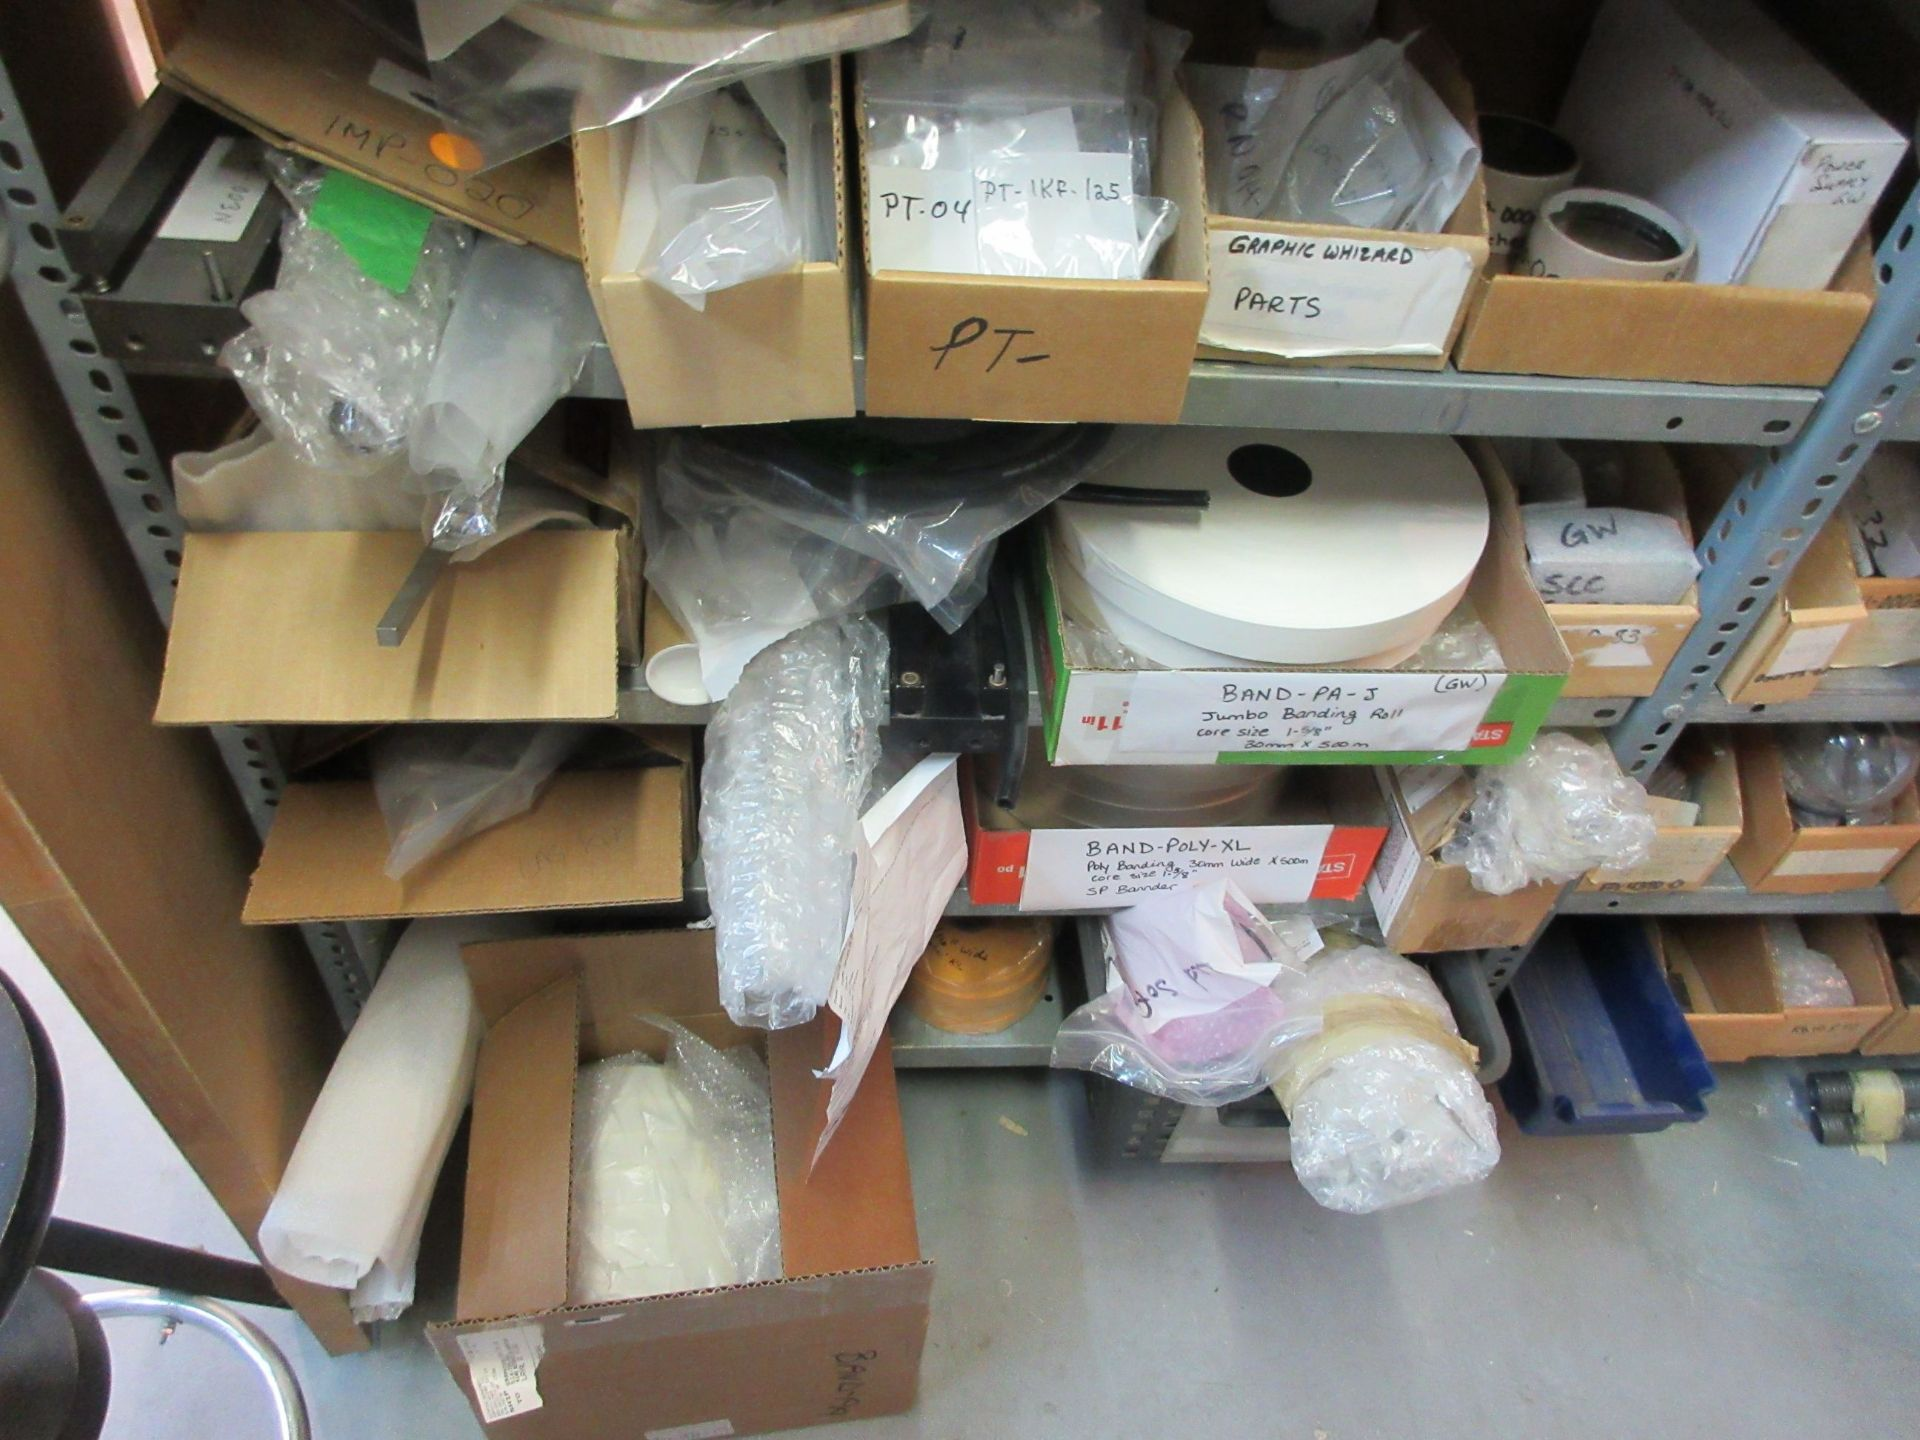 LOT Including boxes of assorted parts for STANDARD HORIZON (approx. Qty 75 boxes) - Image 10 of 11